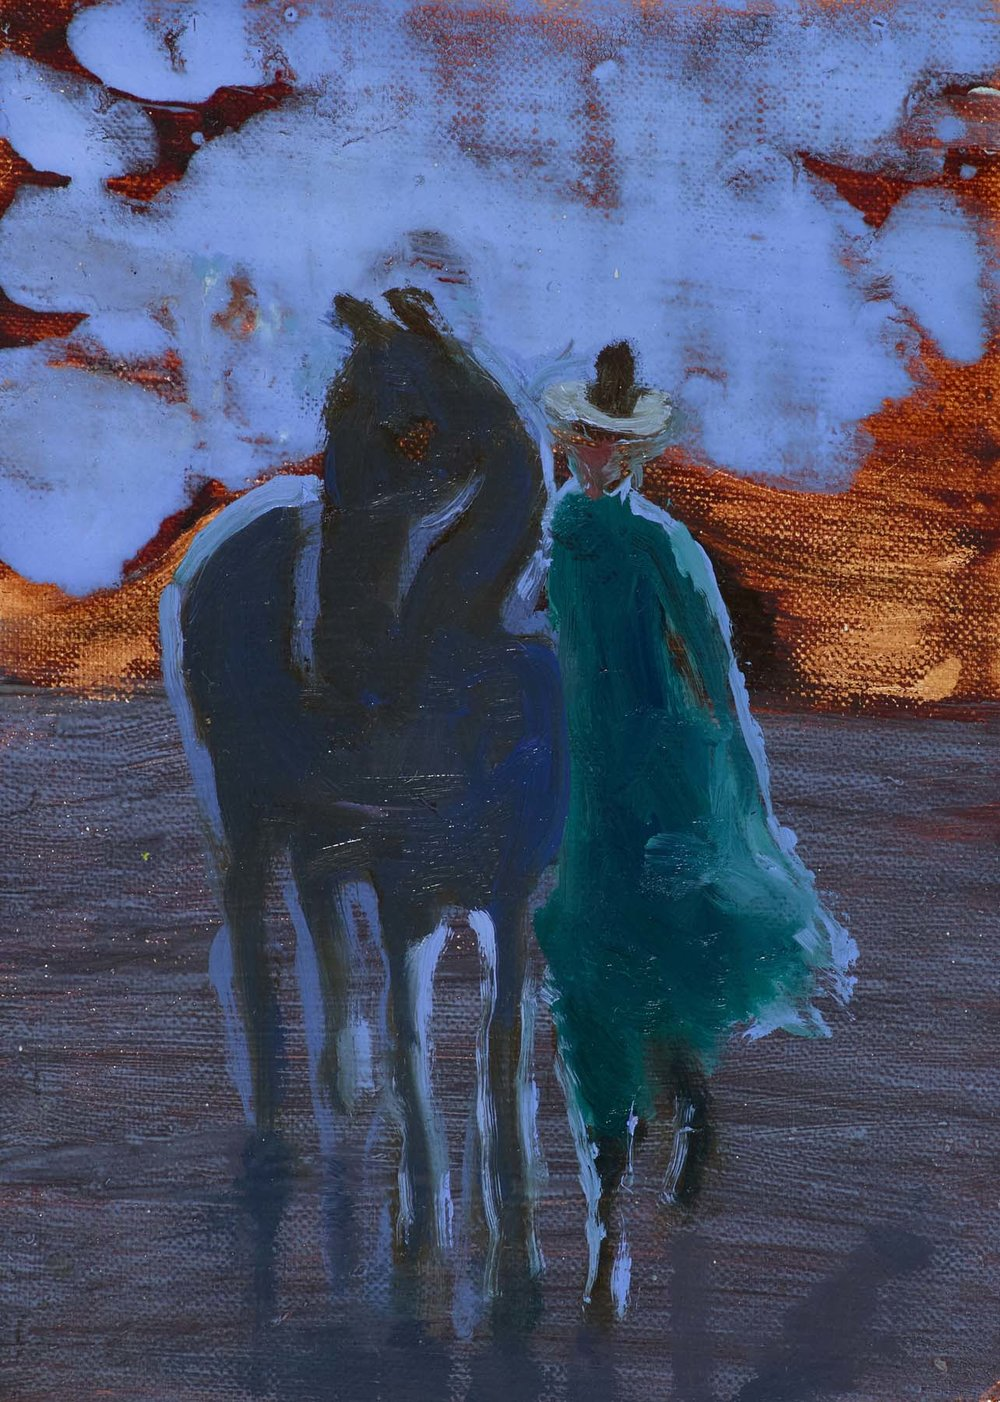 dusk by the sea figures 16x12cm oil on board.jpg